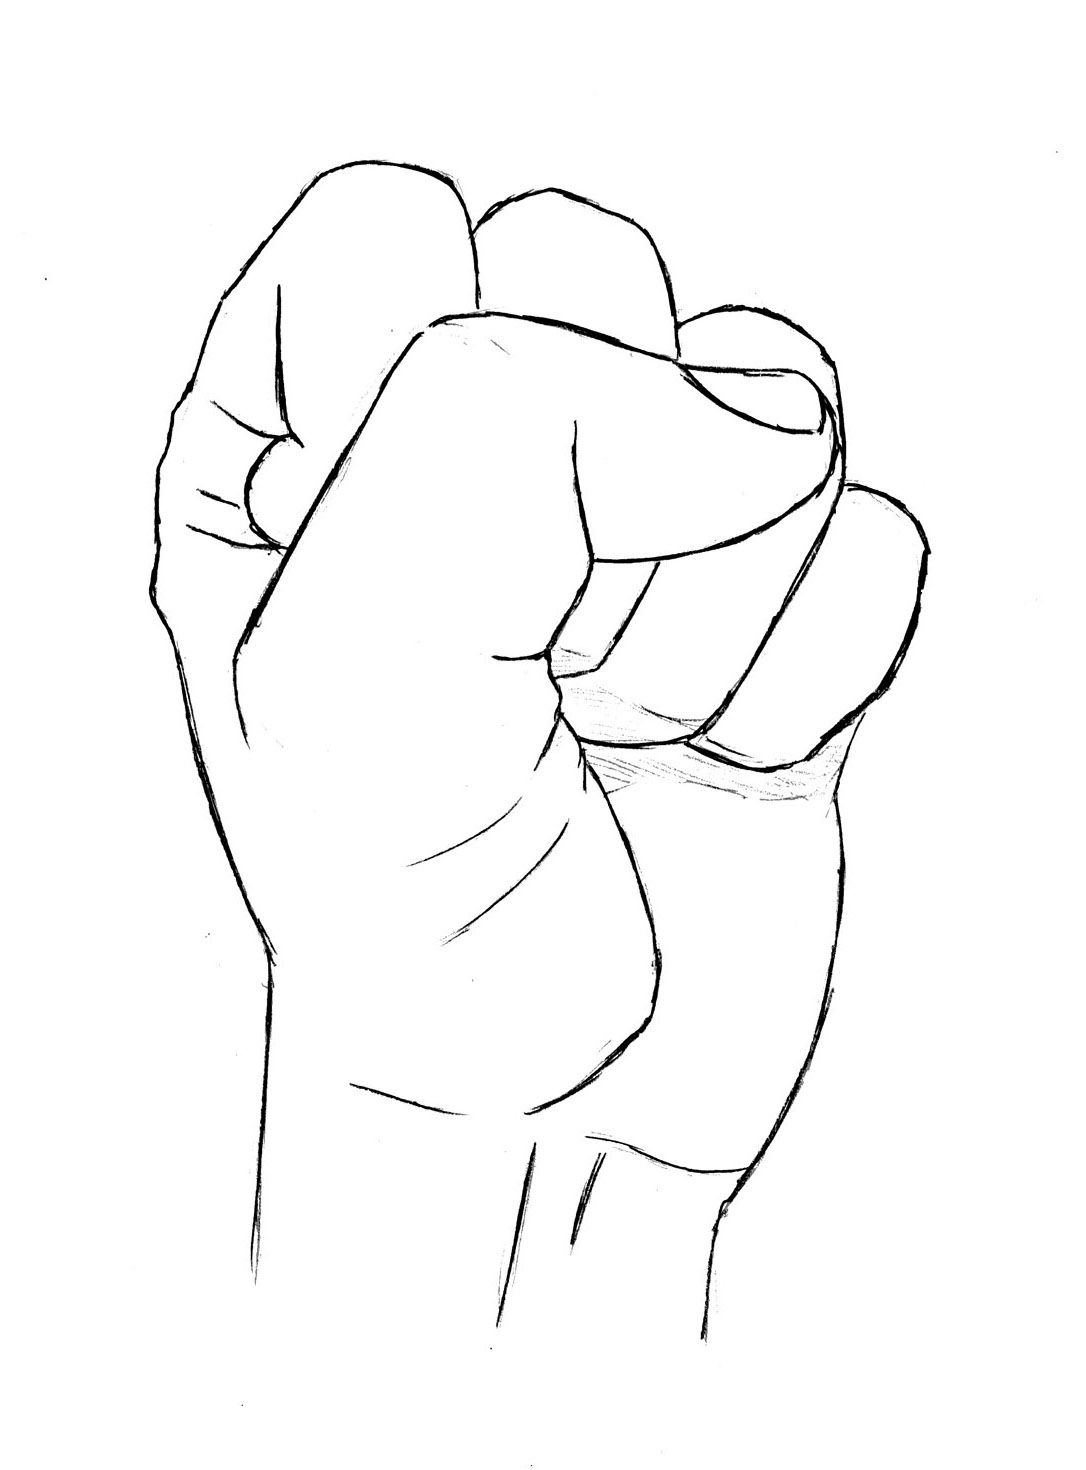 How To Draw Clenched Fist : clenched, Drawing, Lessons:, Clenched, Fist!, Hands,, Fist,, Reference